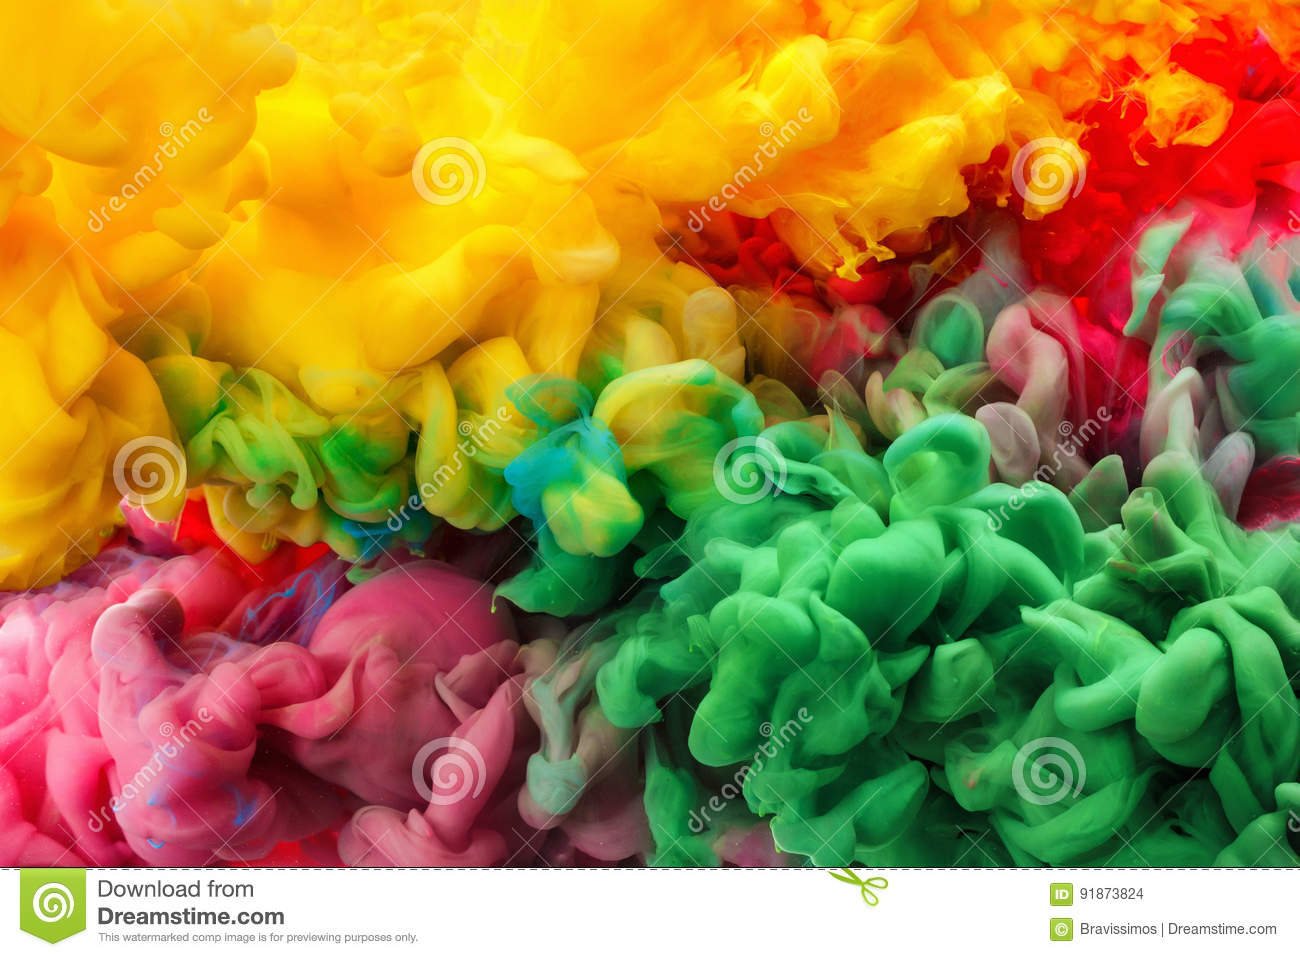 Download Colorful Acrylic Ink In Water Isolated. Abstract Background. Color Explosion Stock Photo - Image of liquid, wallpaper: 91873824